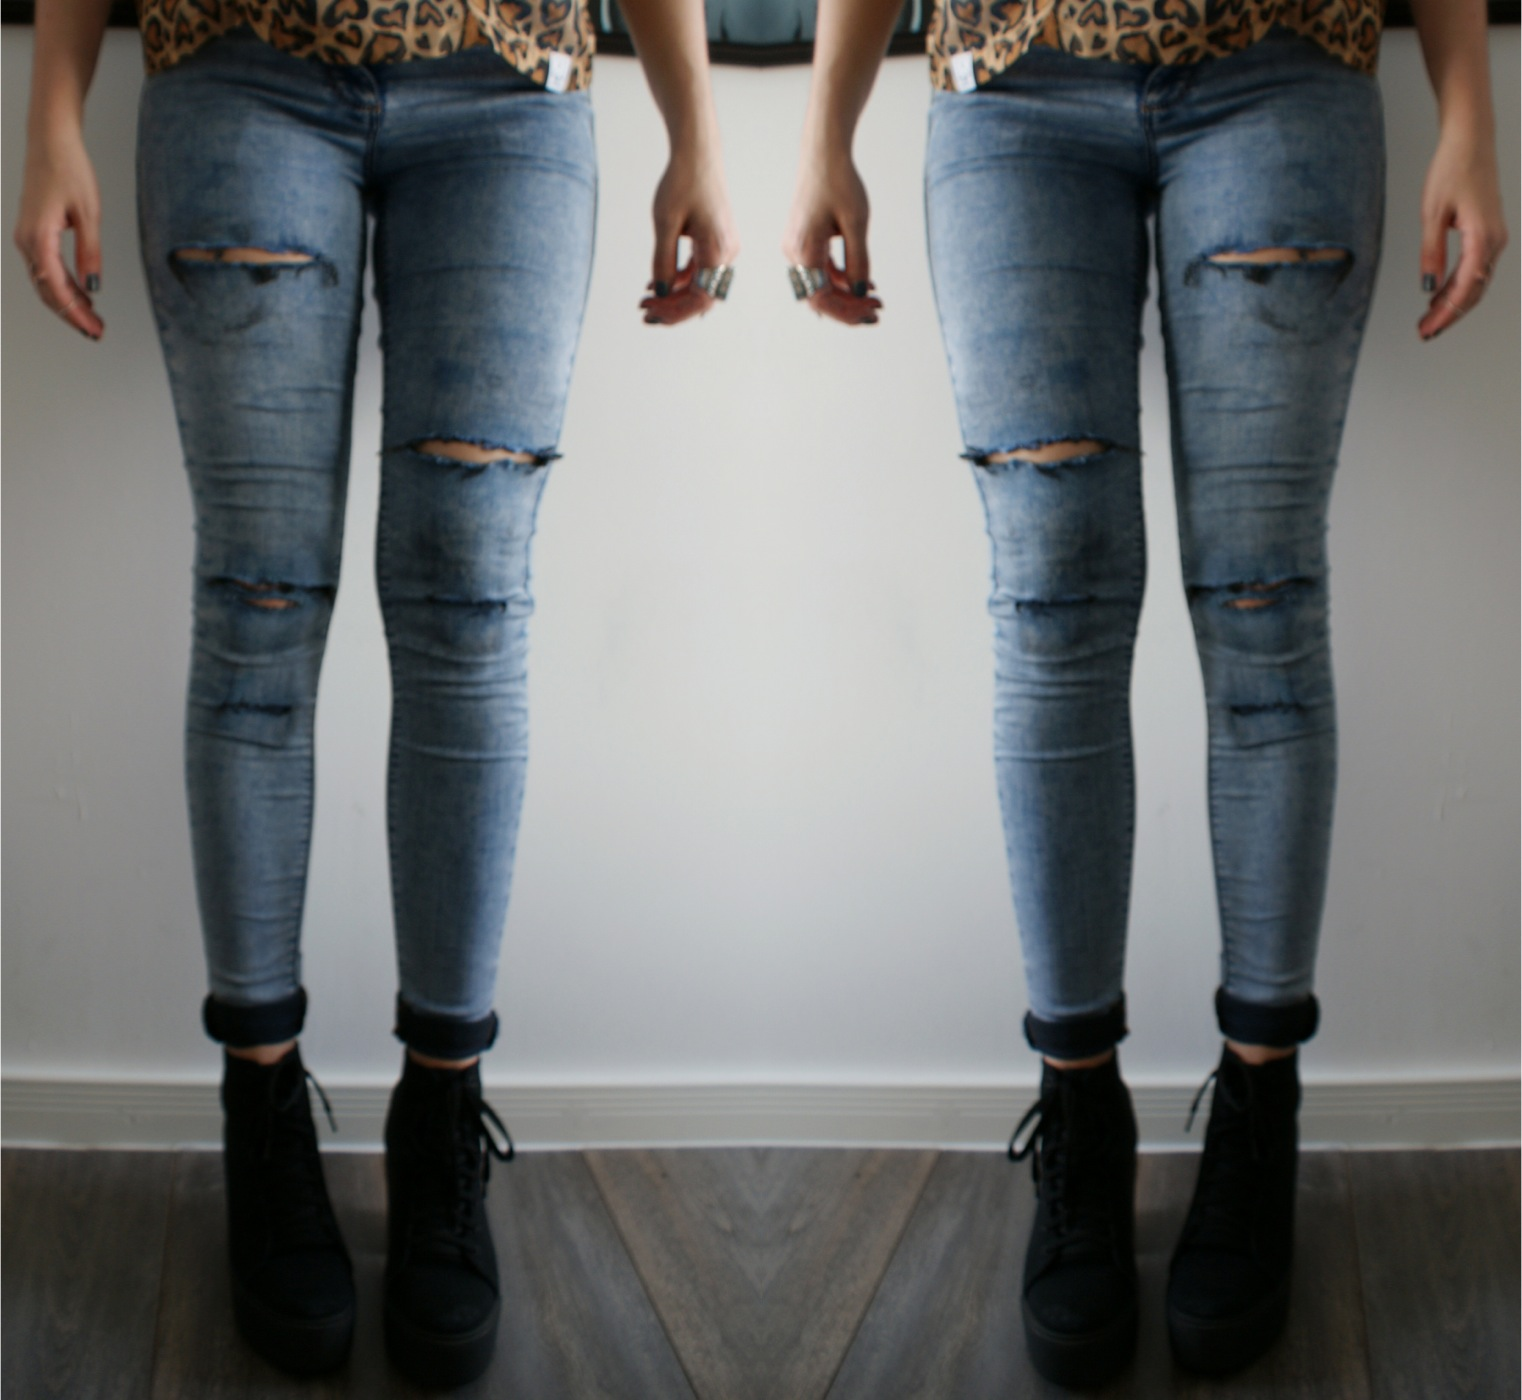 C o c o s p e a r l s diy ripped jeans so i am now going to explain step by step how to re create this look yourself if i can do it a monkey could do it solutioingenieria Gallery